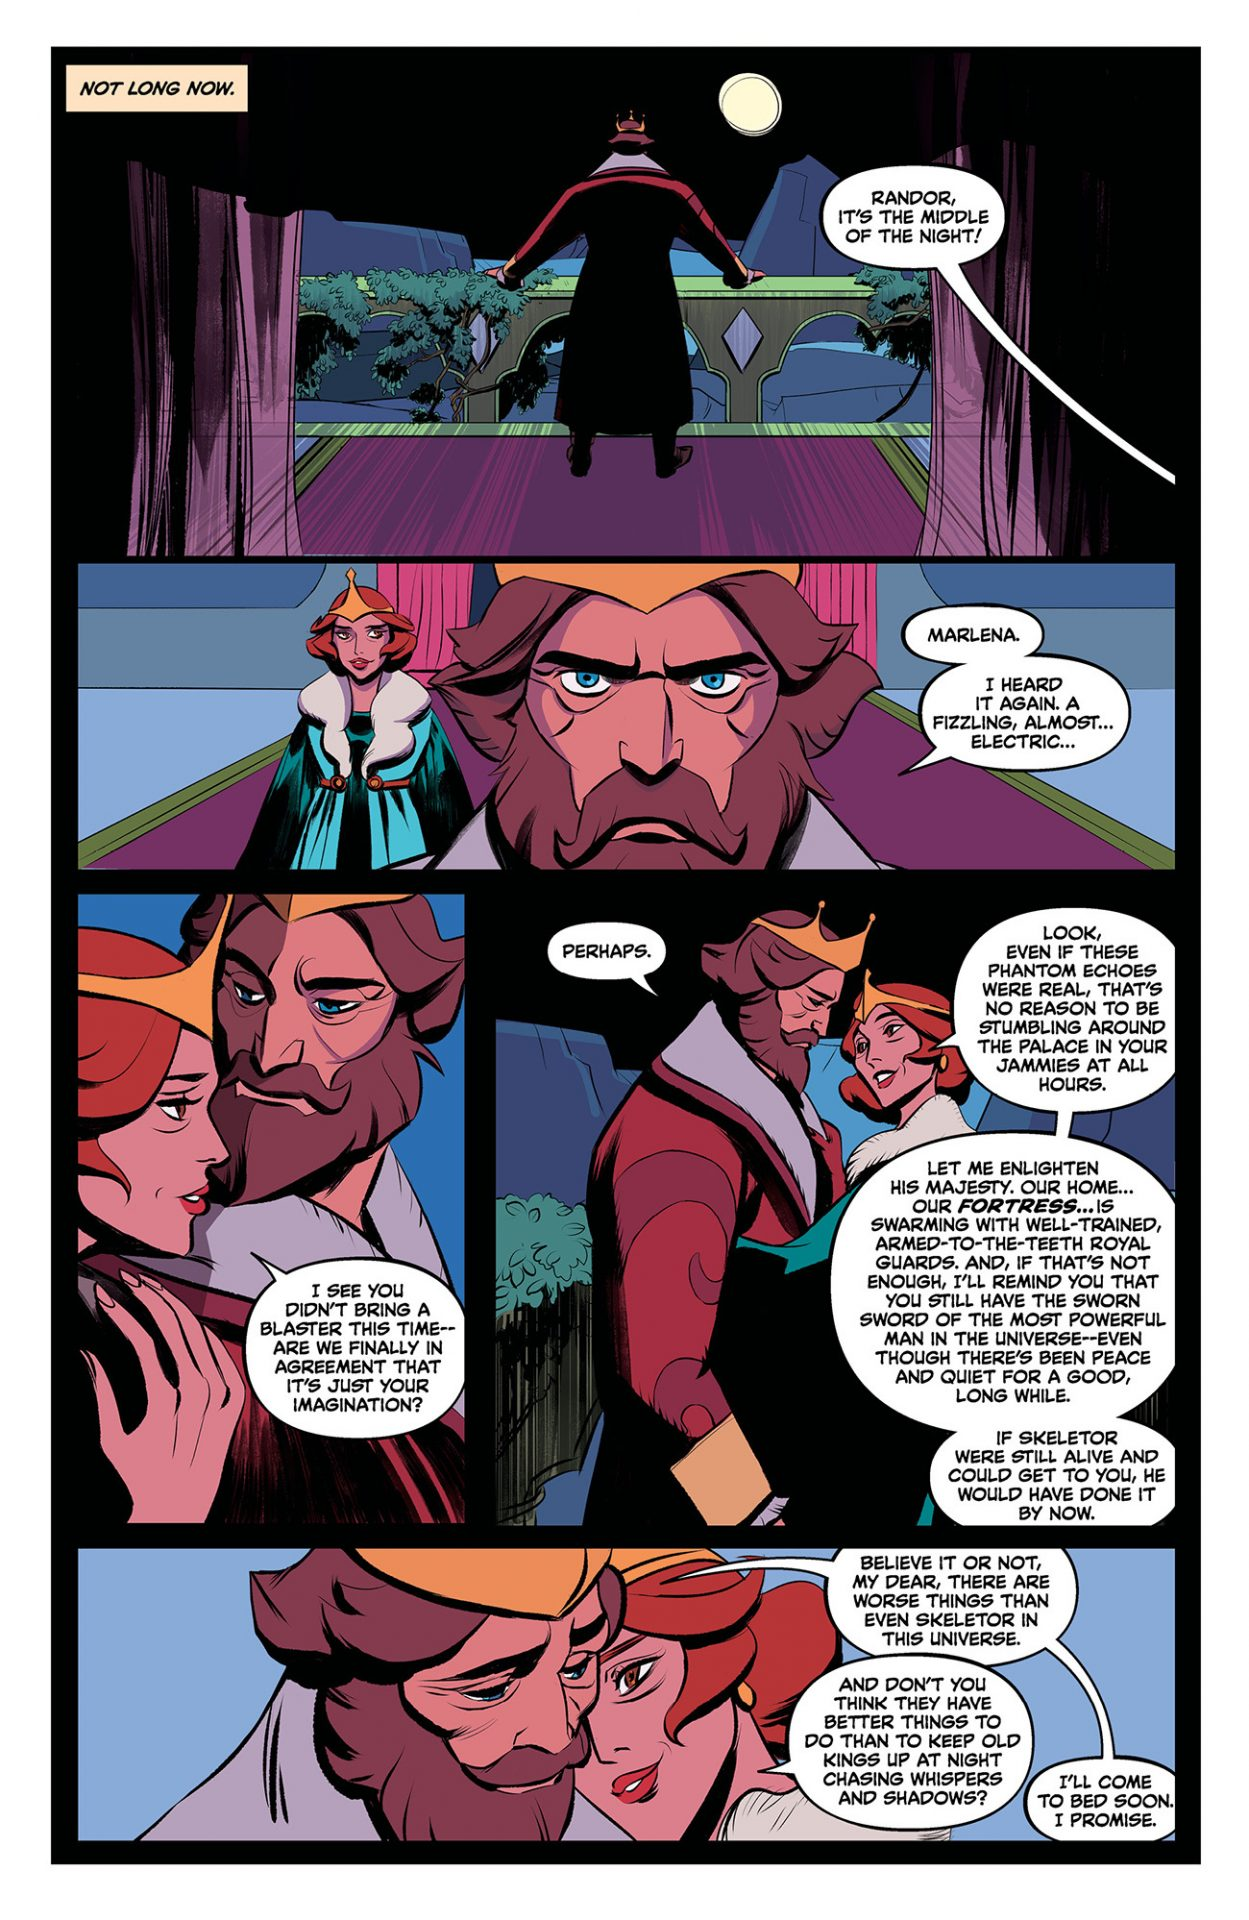 The first page from Dark Horse Comics' Masters of the Universe: Revelation feature's He-Man's parents, King Randor and Queen Marlena.